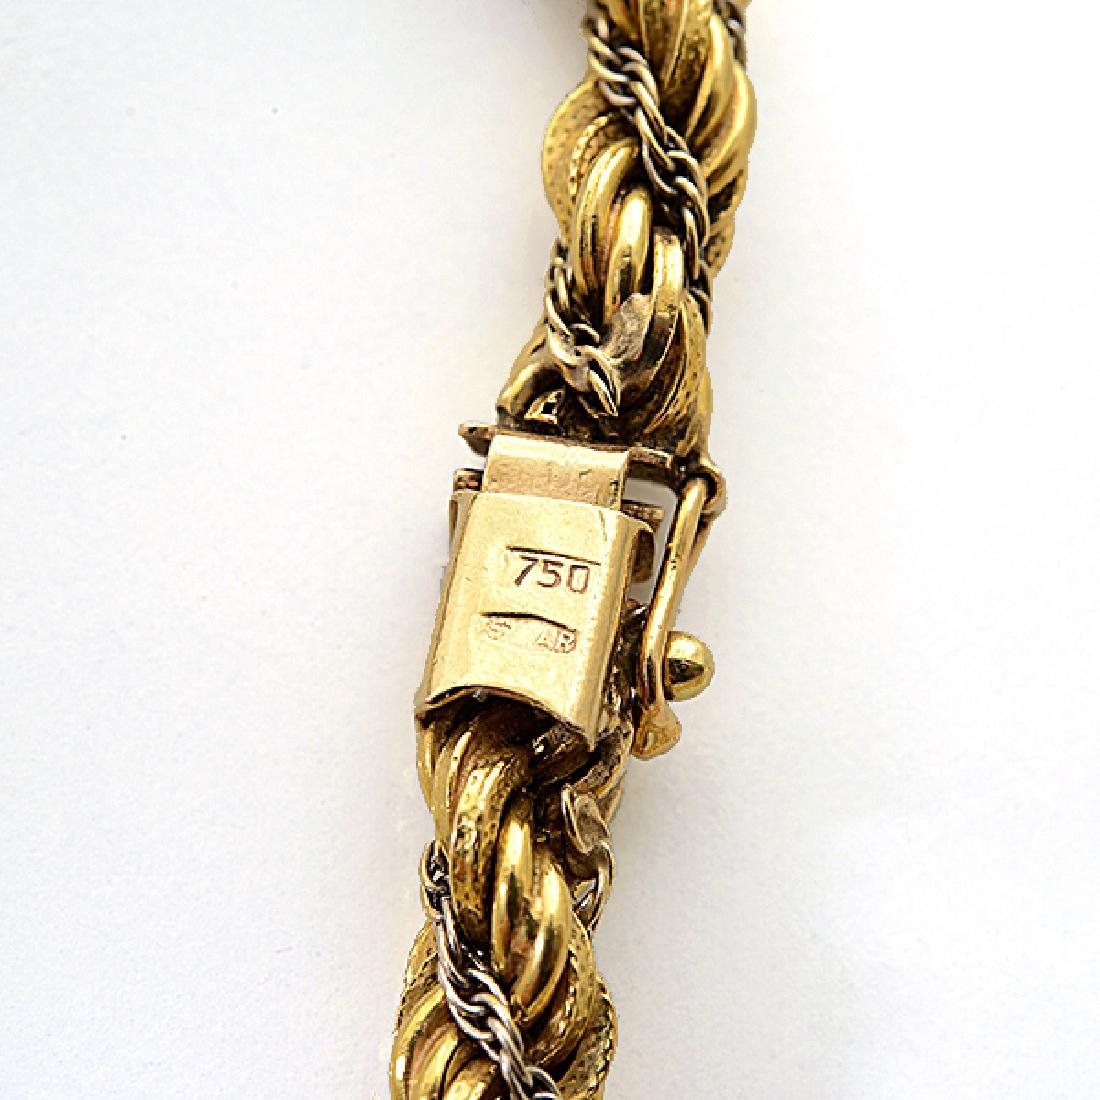 18k Gold Long Chain Necklace. - 4